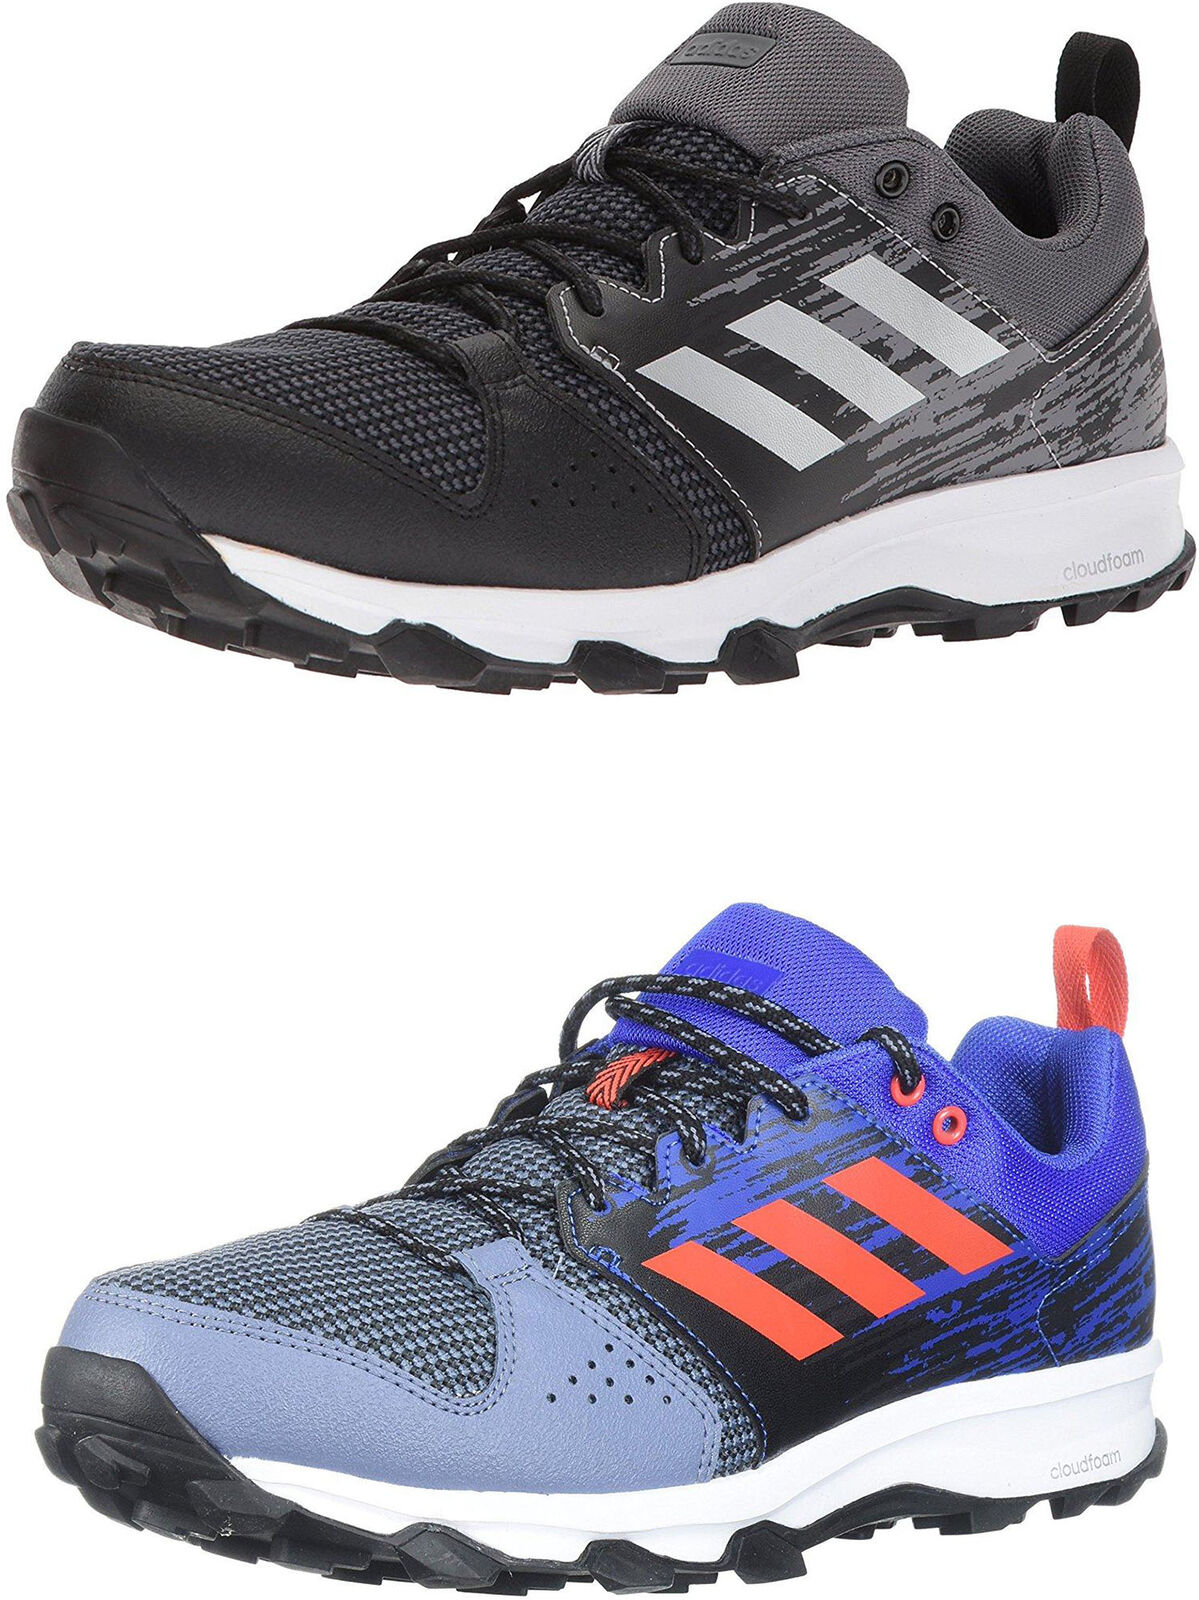 adidas Men's Galaxy M Trail Runner Shoes, 2 Colors